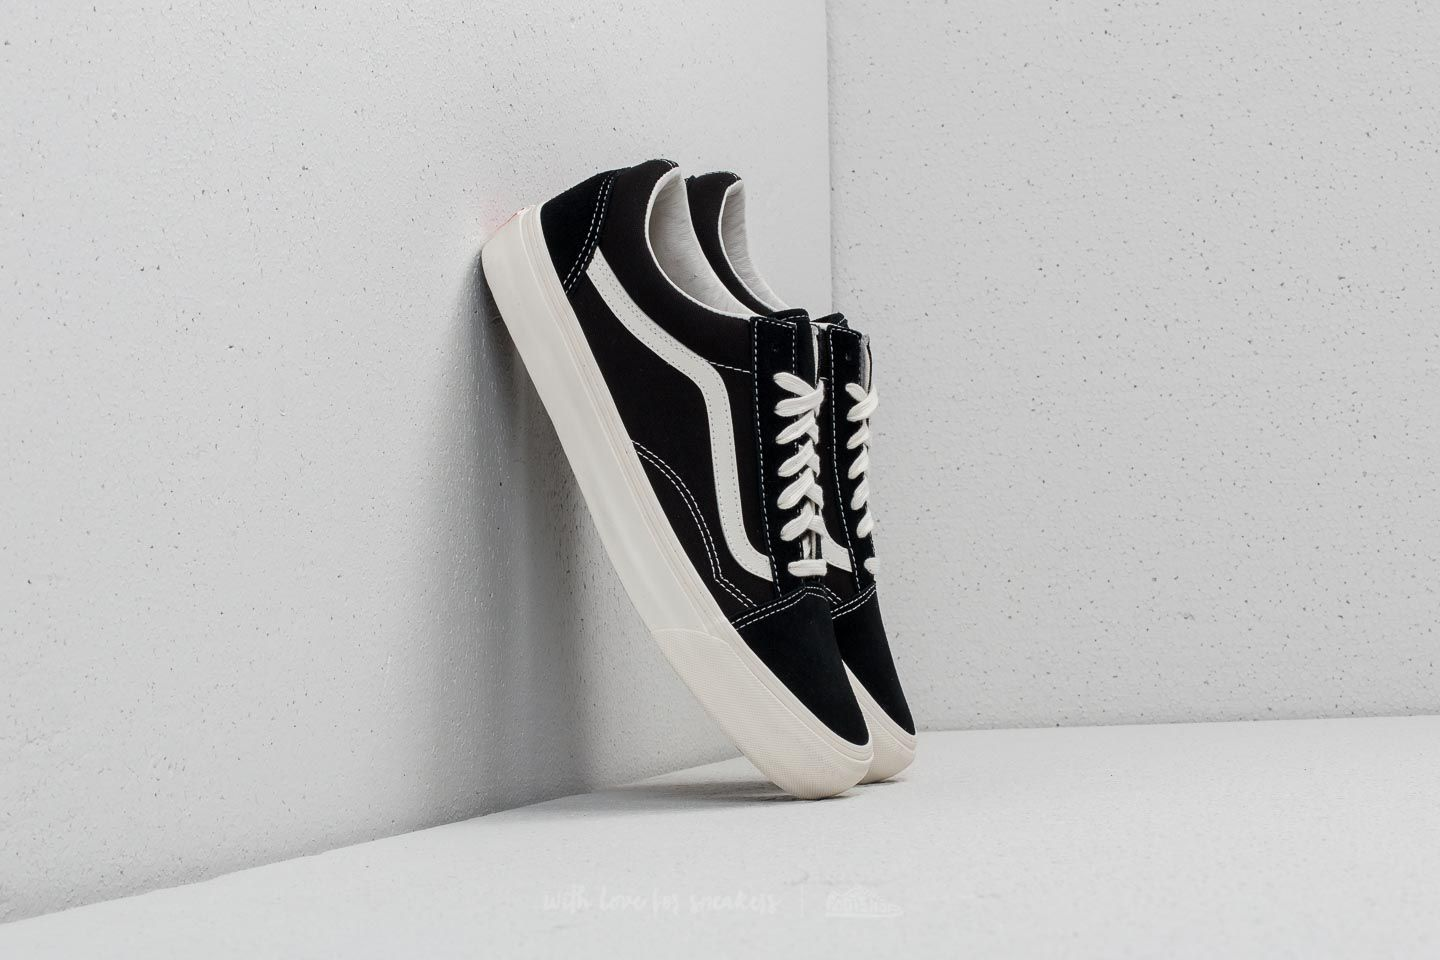 20989a82e6be6f Vans OG Old Skool LX (Suede Canvas) Black  Marshmallow